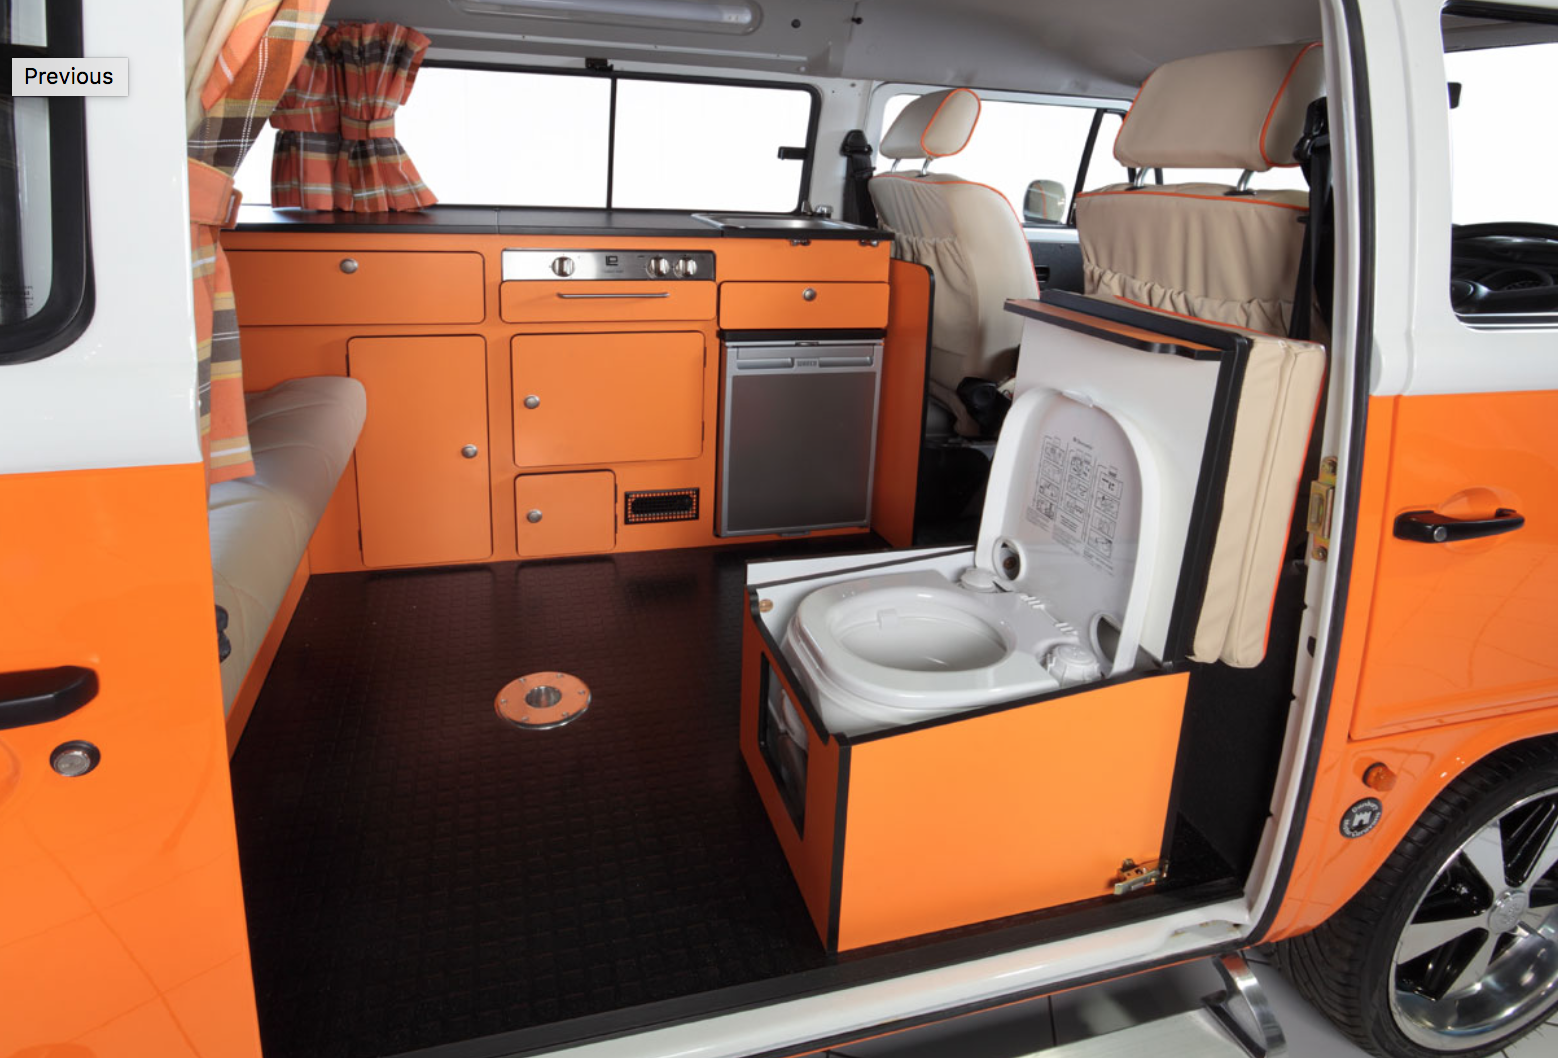 Volkswagen Bus Camper - Bathroom